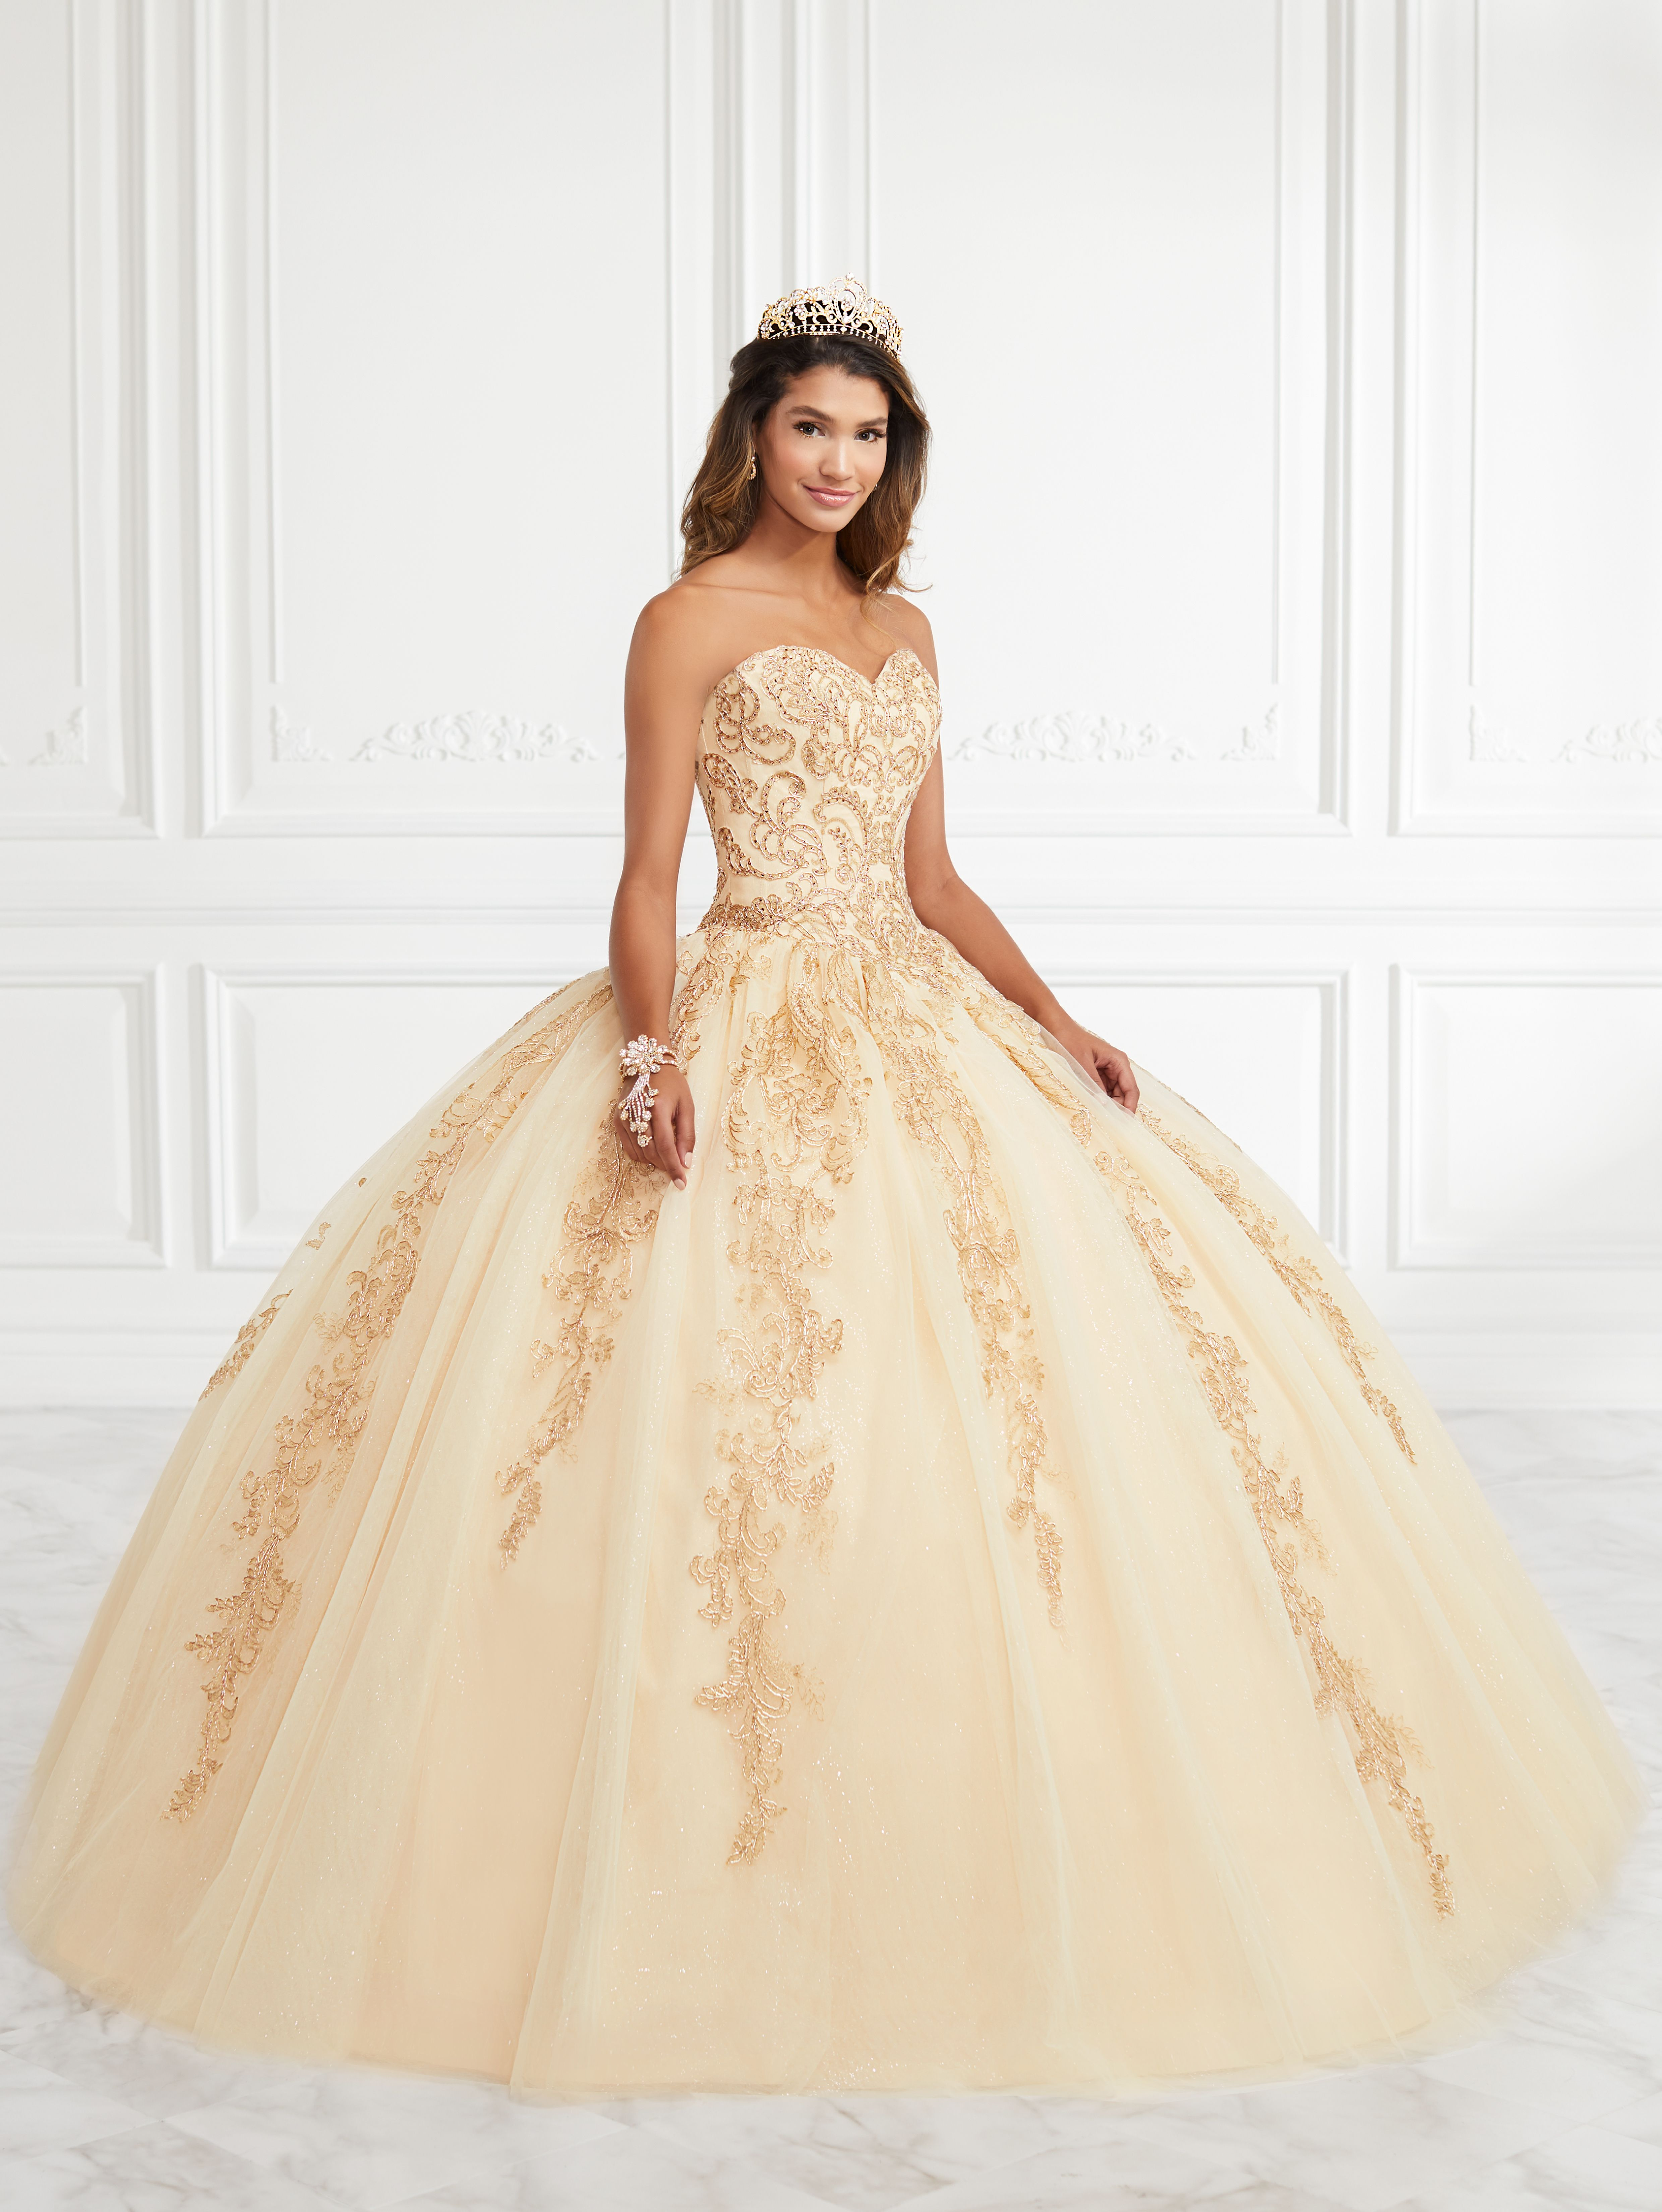 Fiesta Gowns   Quinceanera in 2020   Quince dresses ...